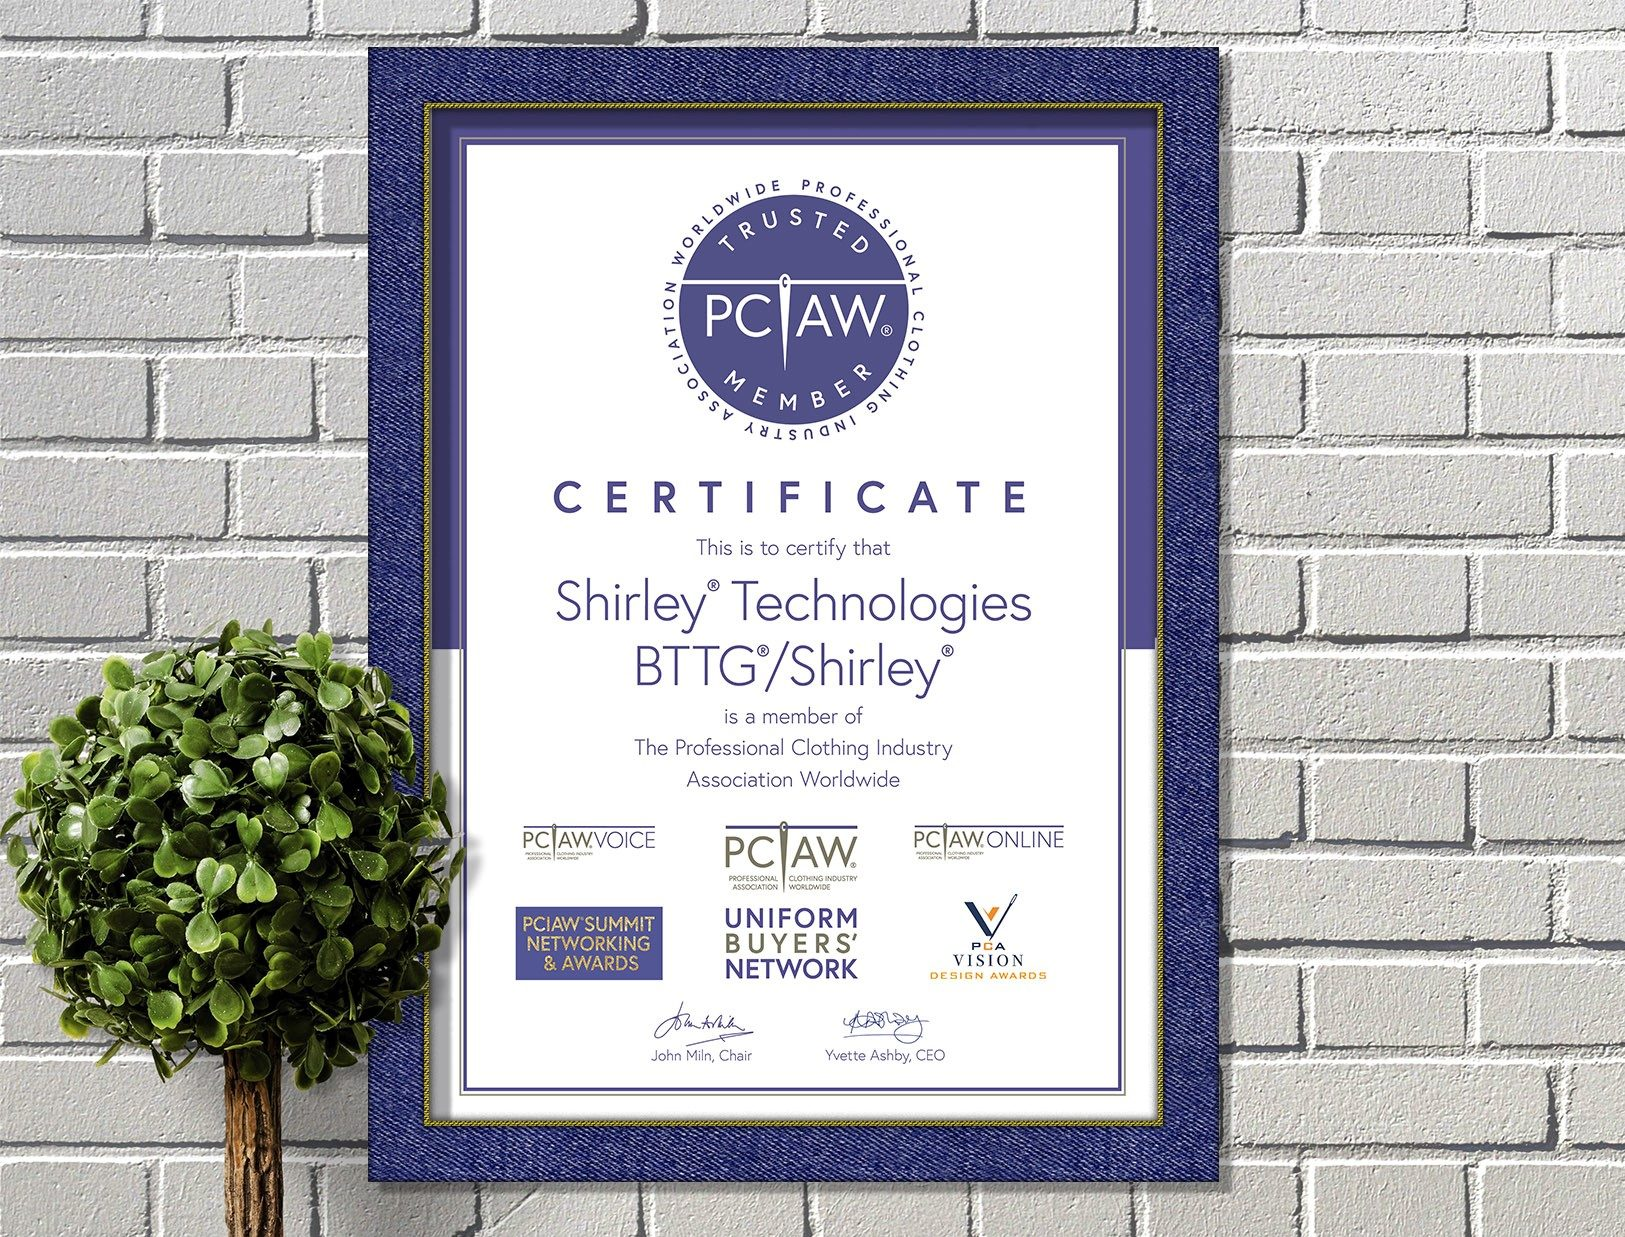 The PCIAW® is pleased to welcome BTTG™/Shirley® into the fold of PCIAW® Trusted Members and looks forward to extending new opportunities for members by connecting buyers with suppliers for workwear, corporatewear and PPE.